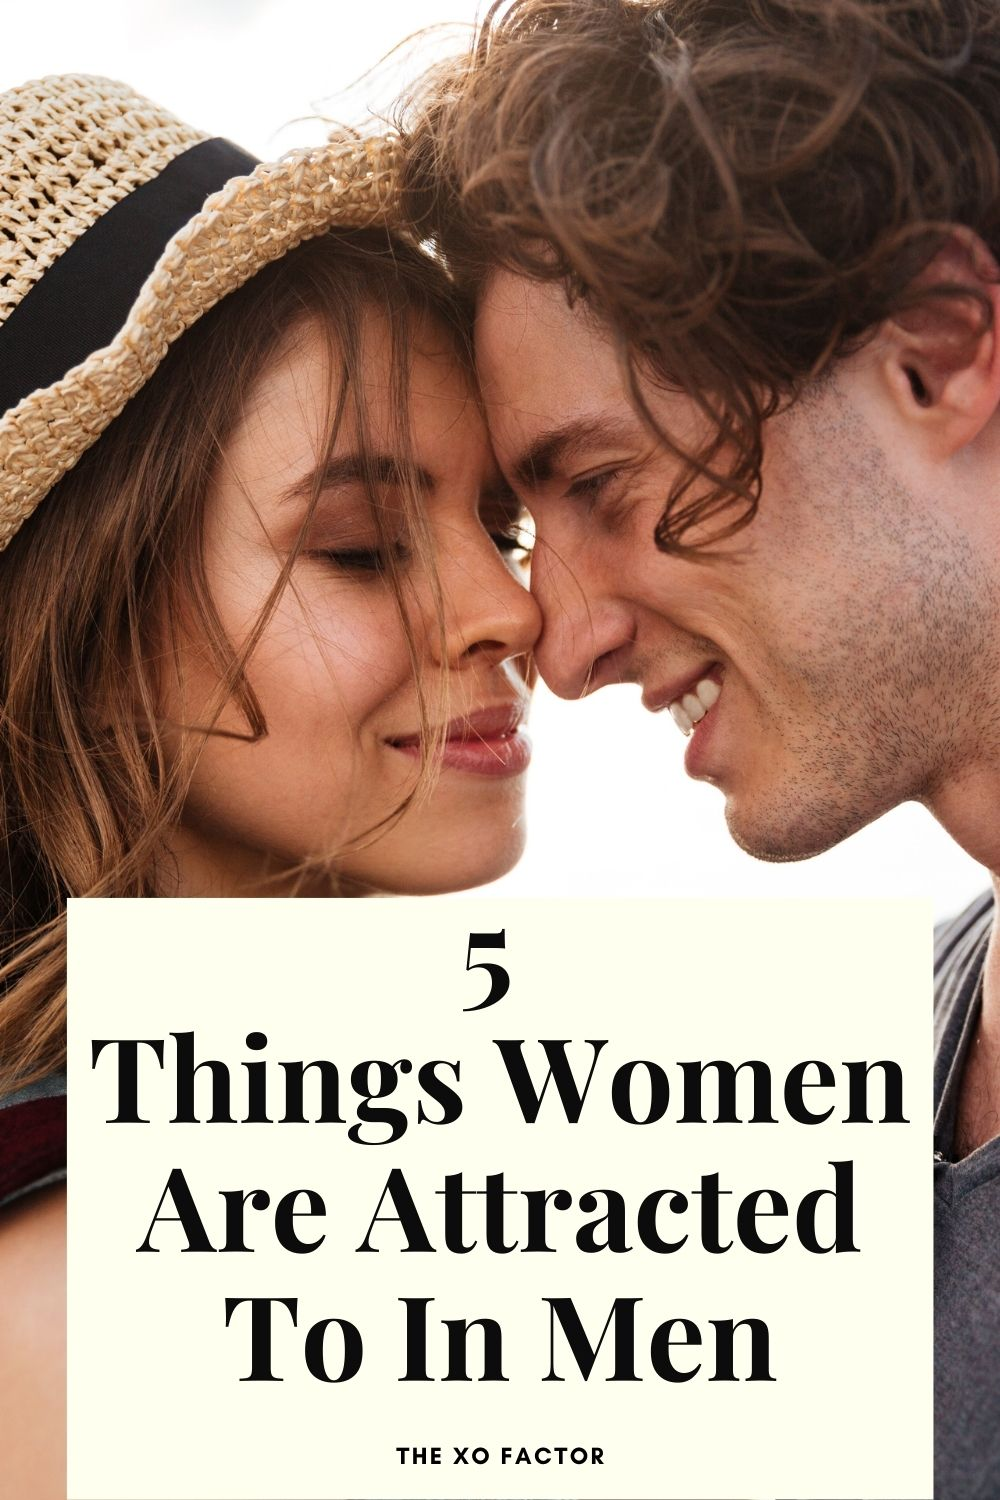 5 things women are attracted to in men